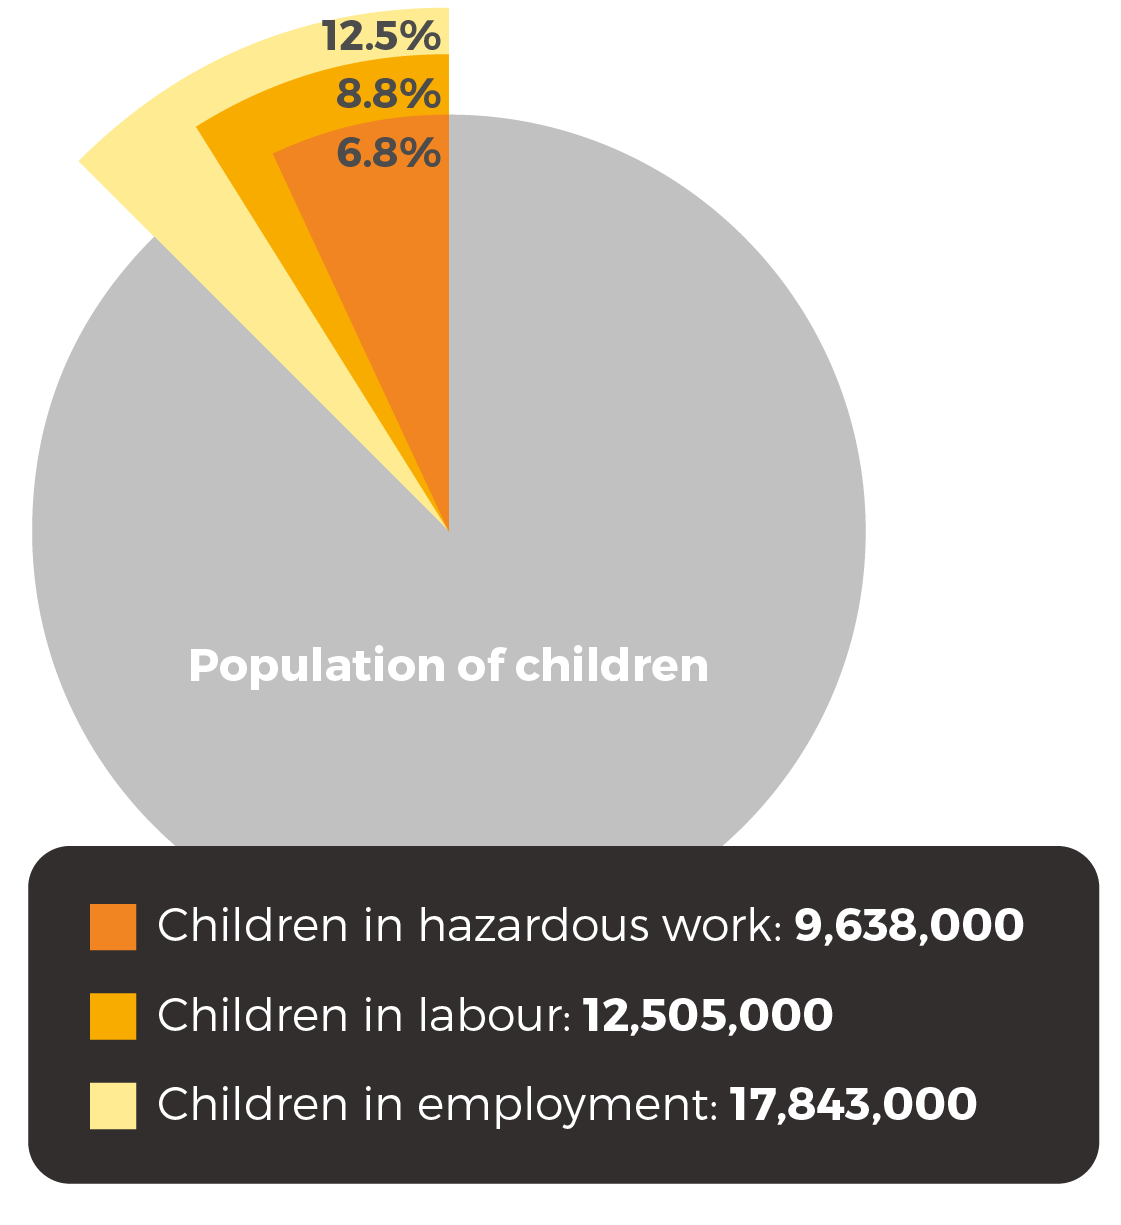 17.8m children are in employment; 12.5m are in child labour and 9.6m in hazardous work